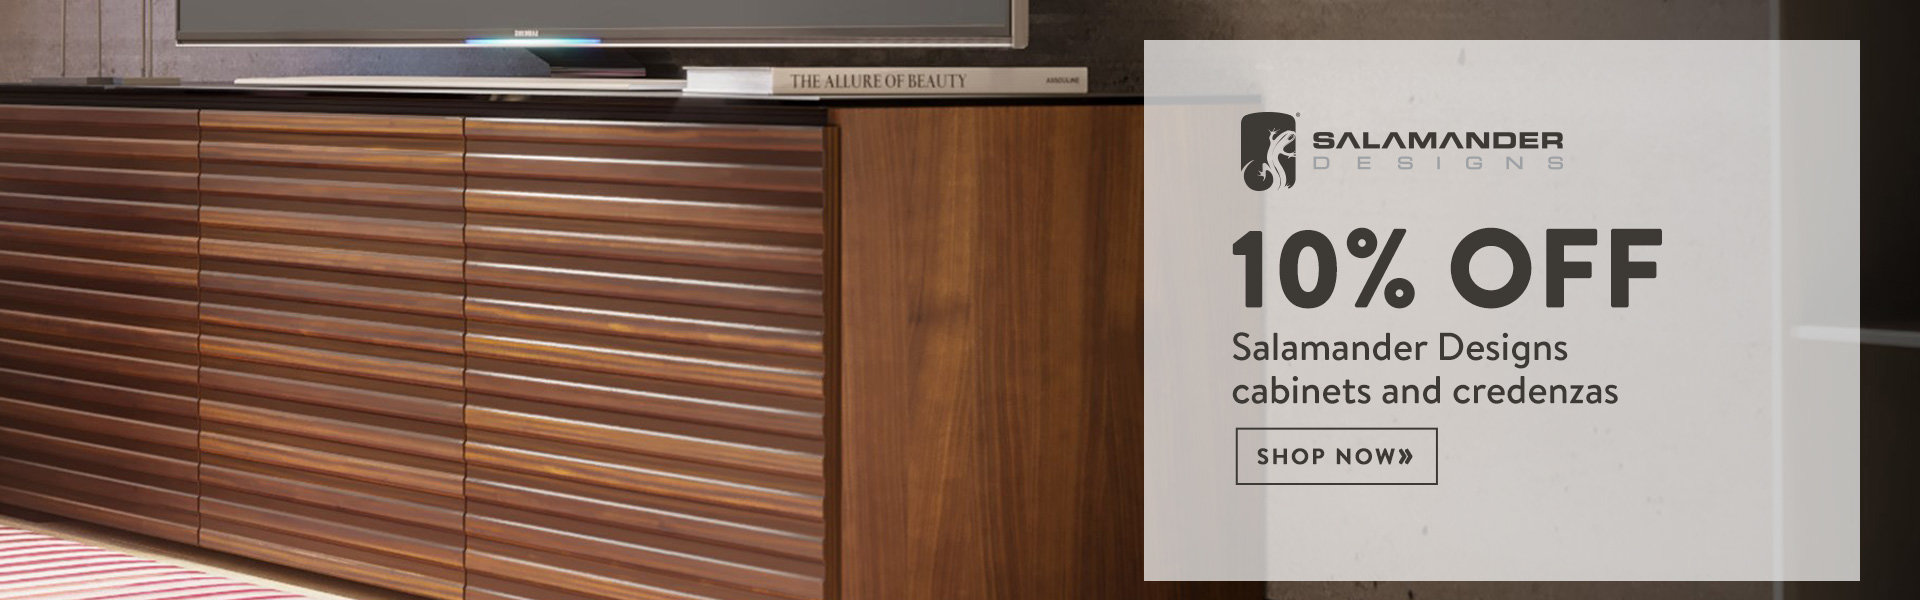 Save 10% or more on Salamander Designs cabinets and credenzas